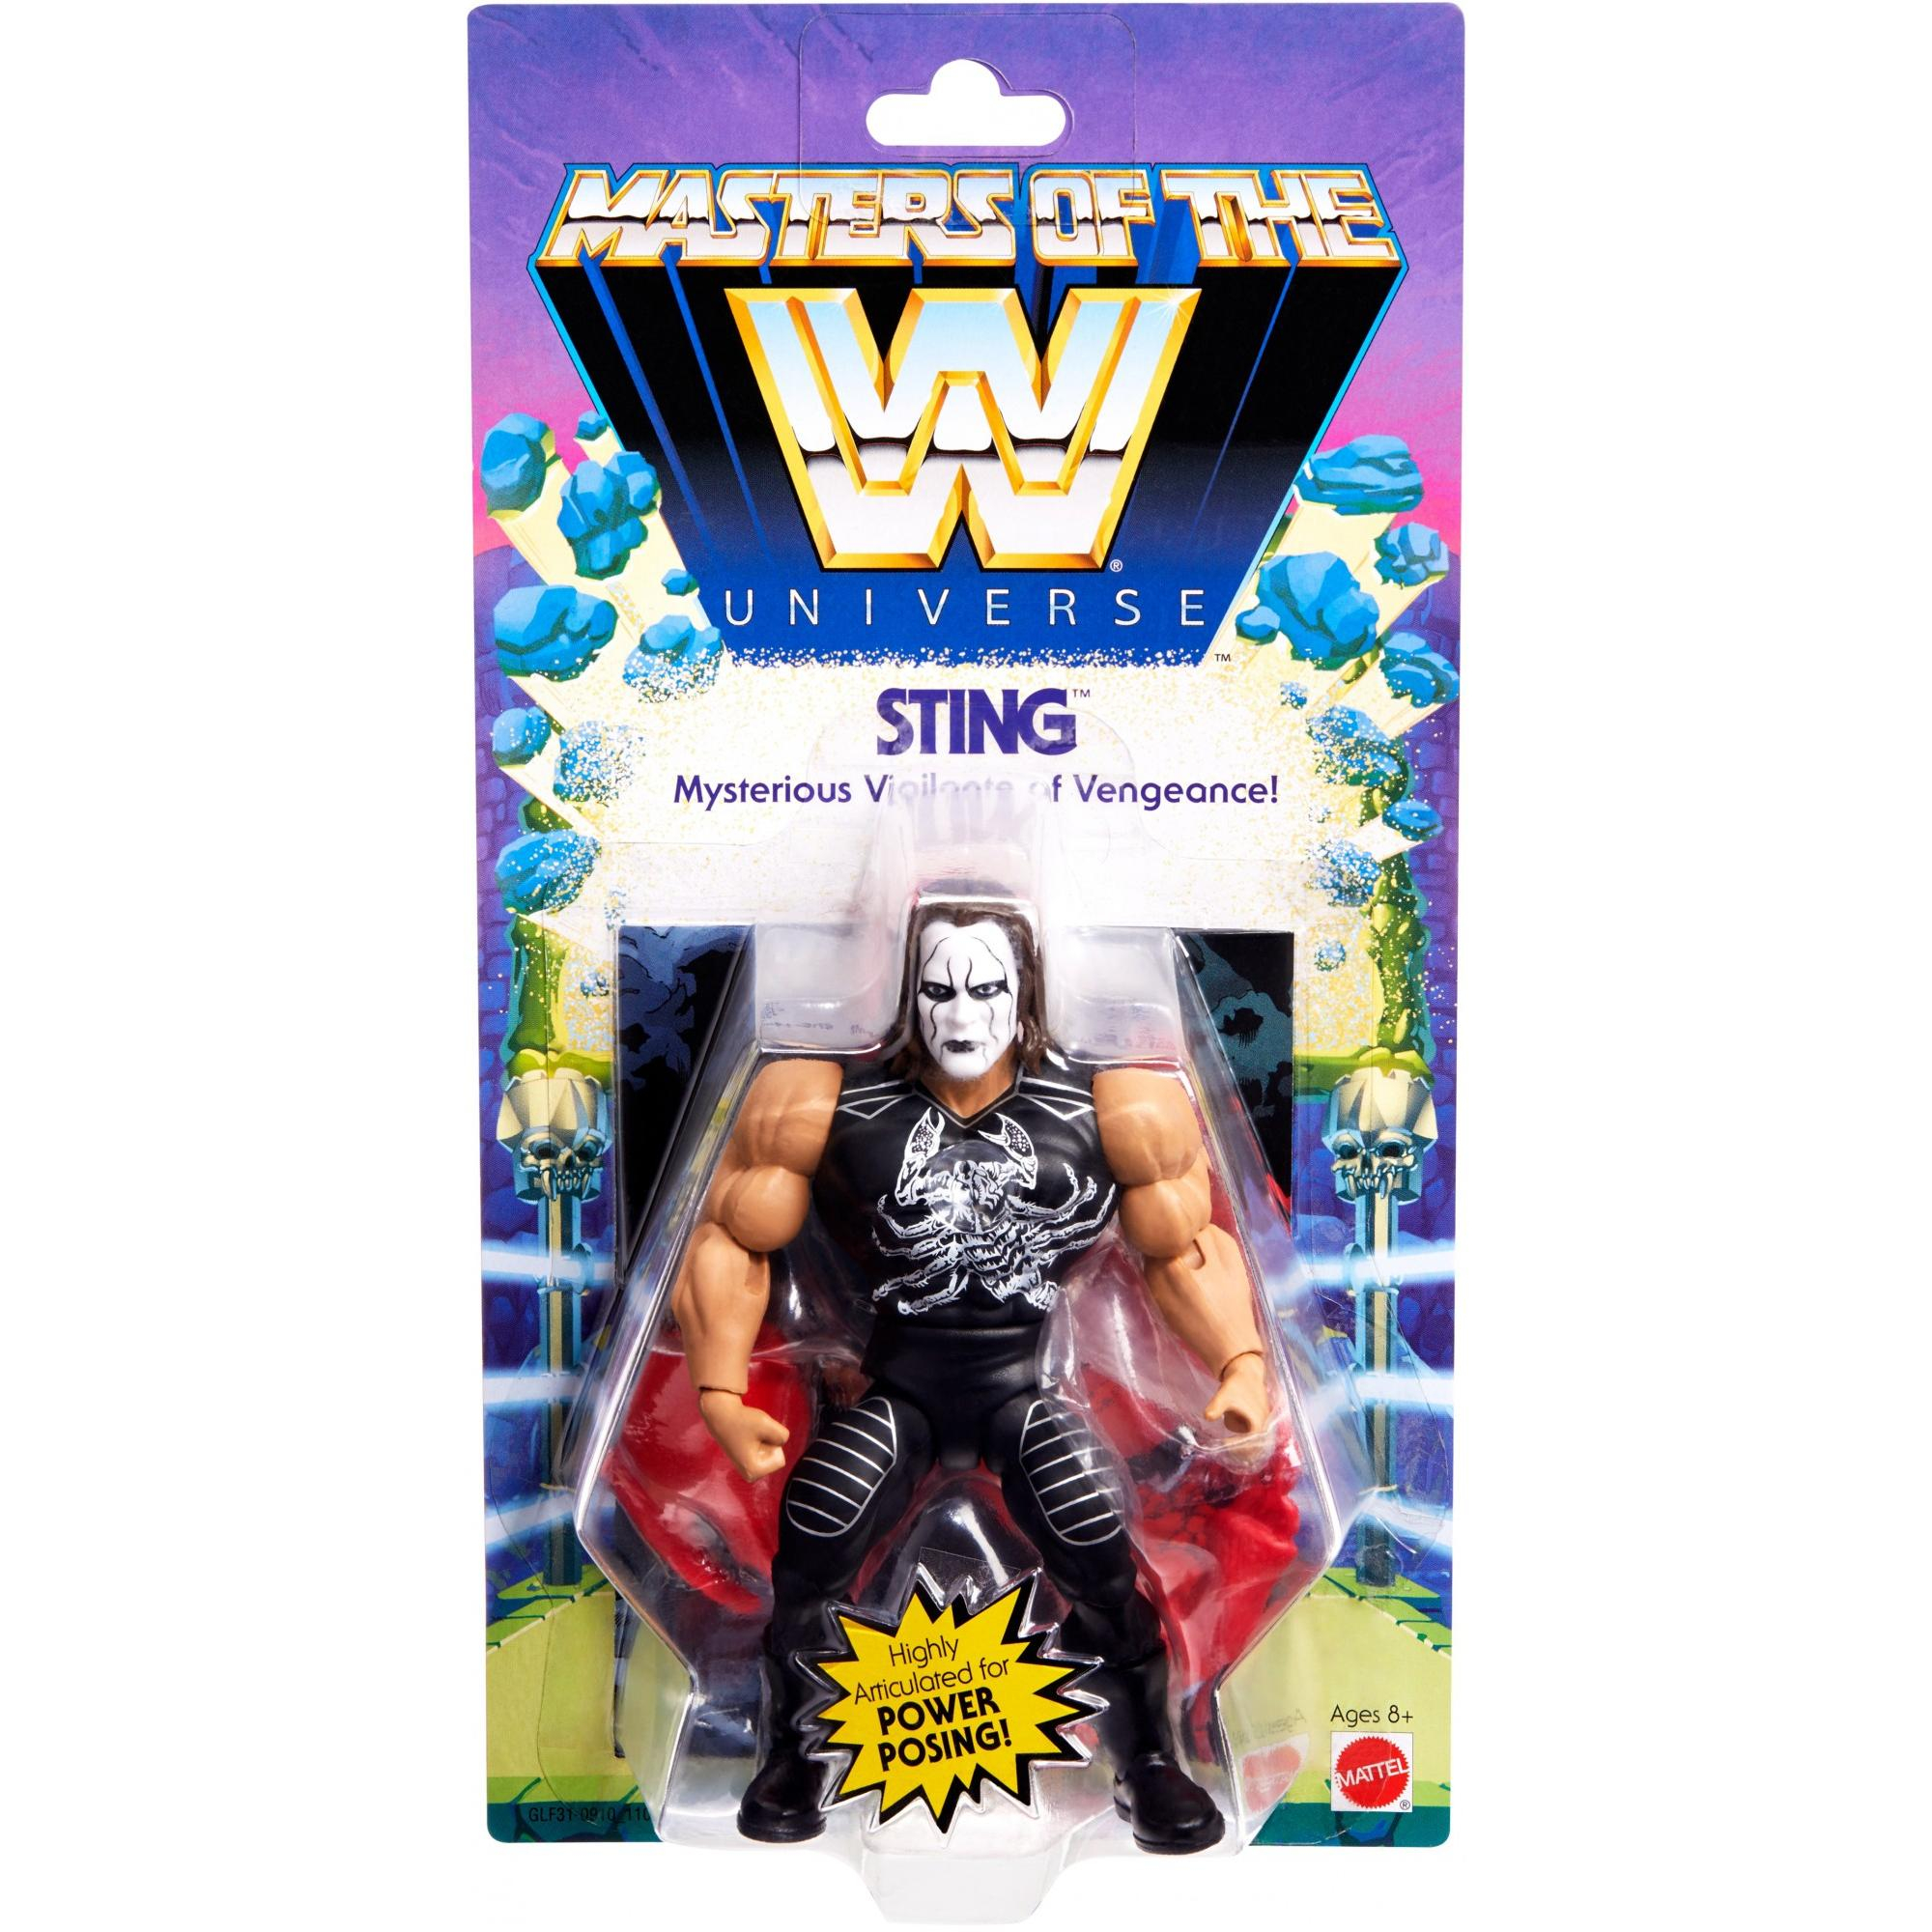 Masters of the WWE Universe: STING by Mattel